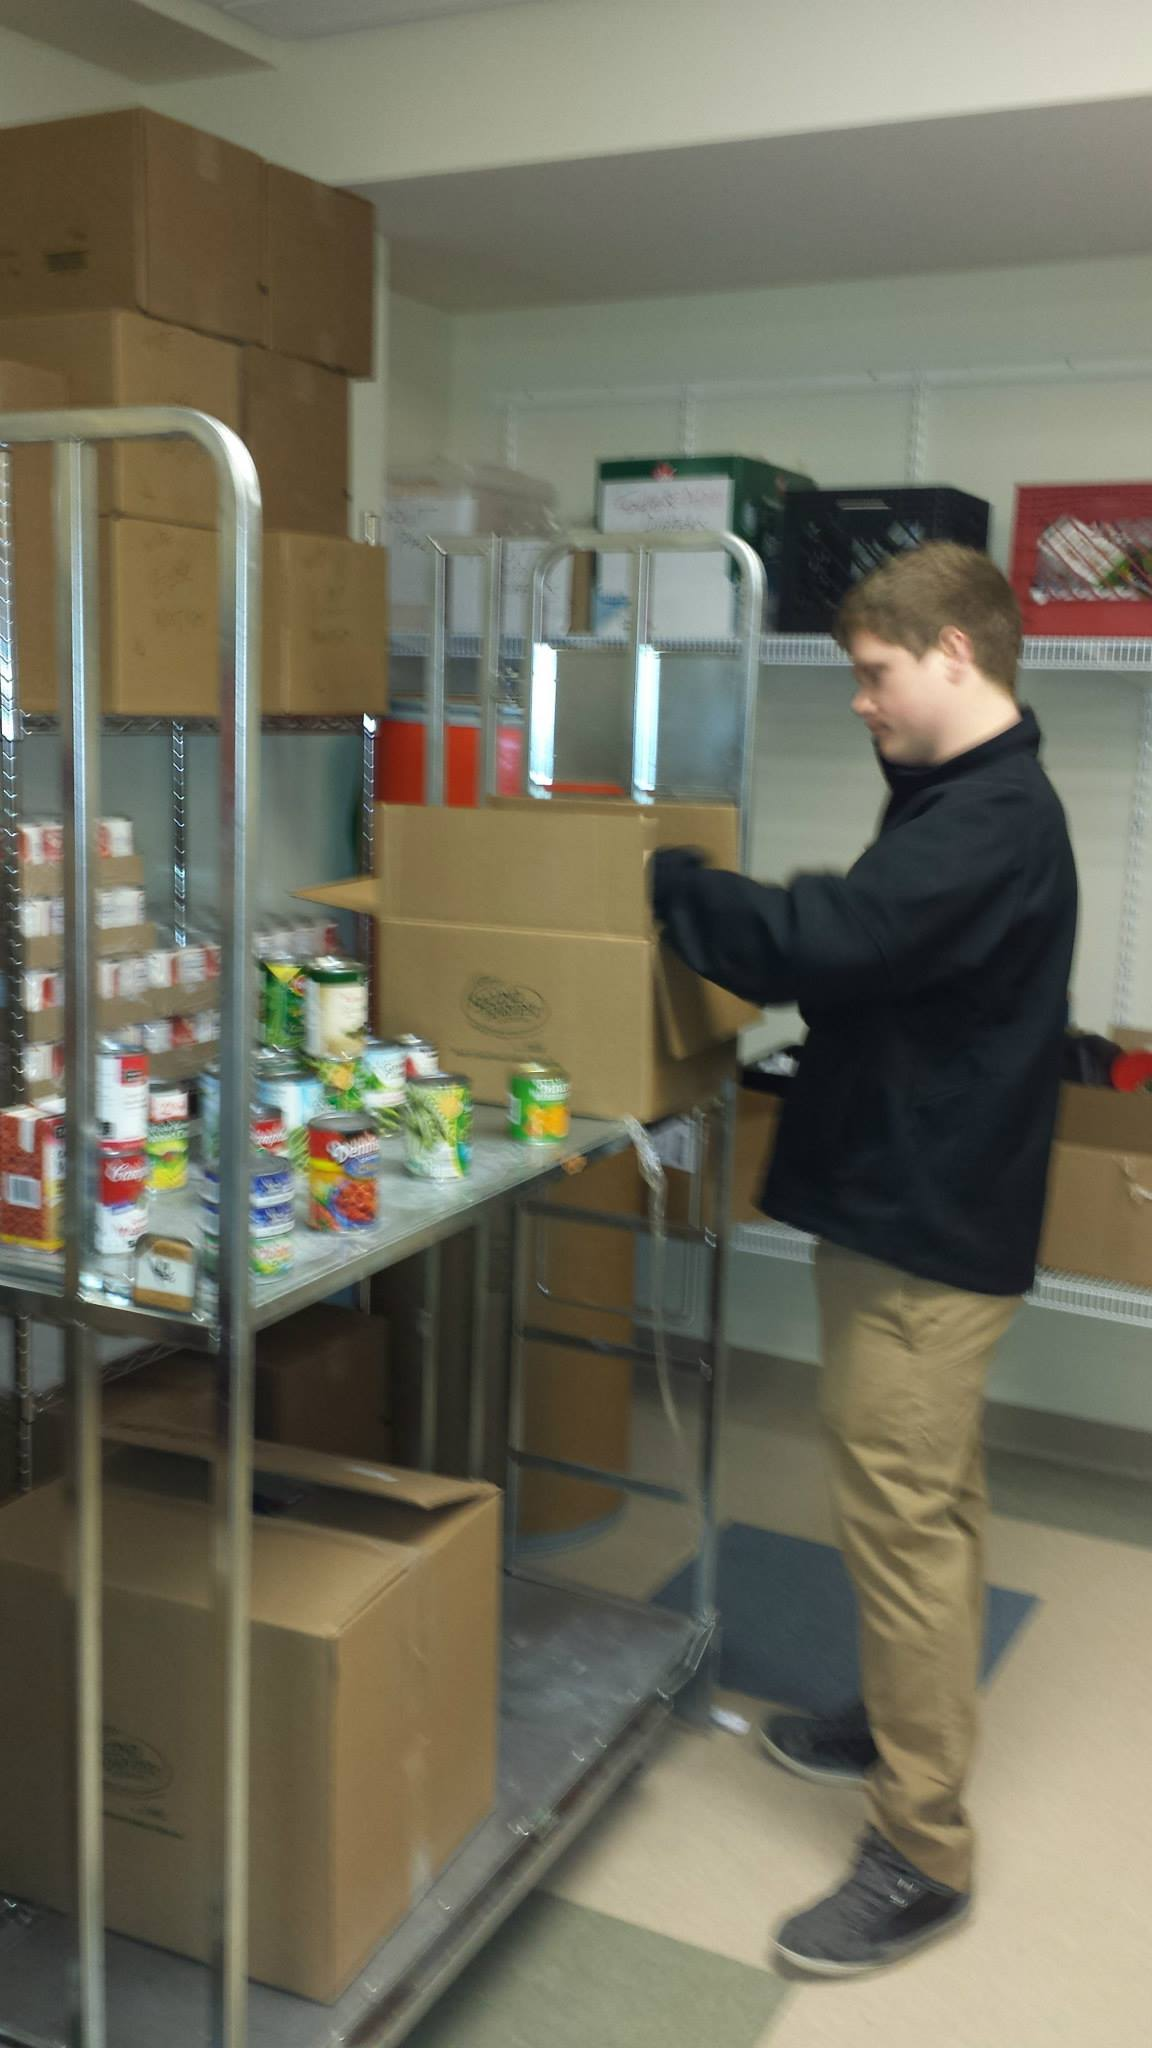 First united methodist church of madison foodpantriesorg for Madison food pantry ct